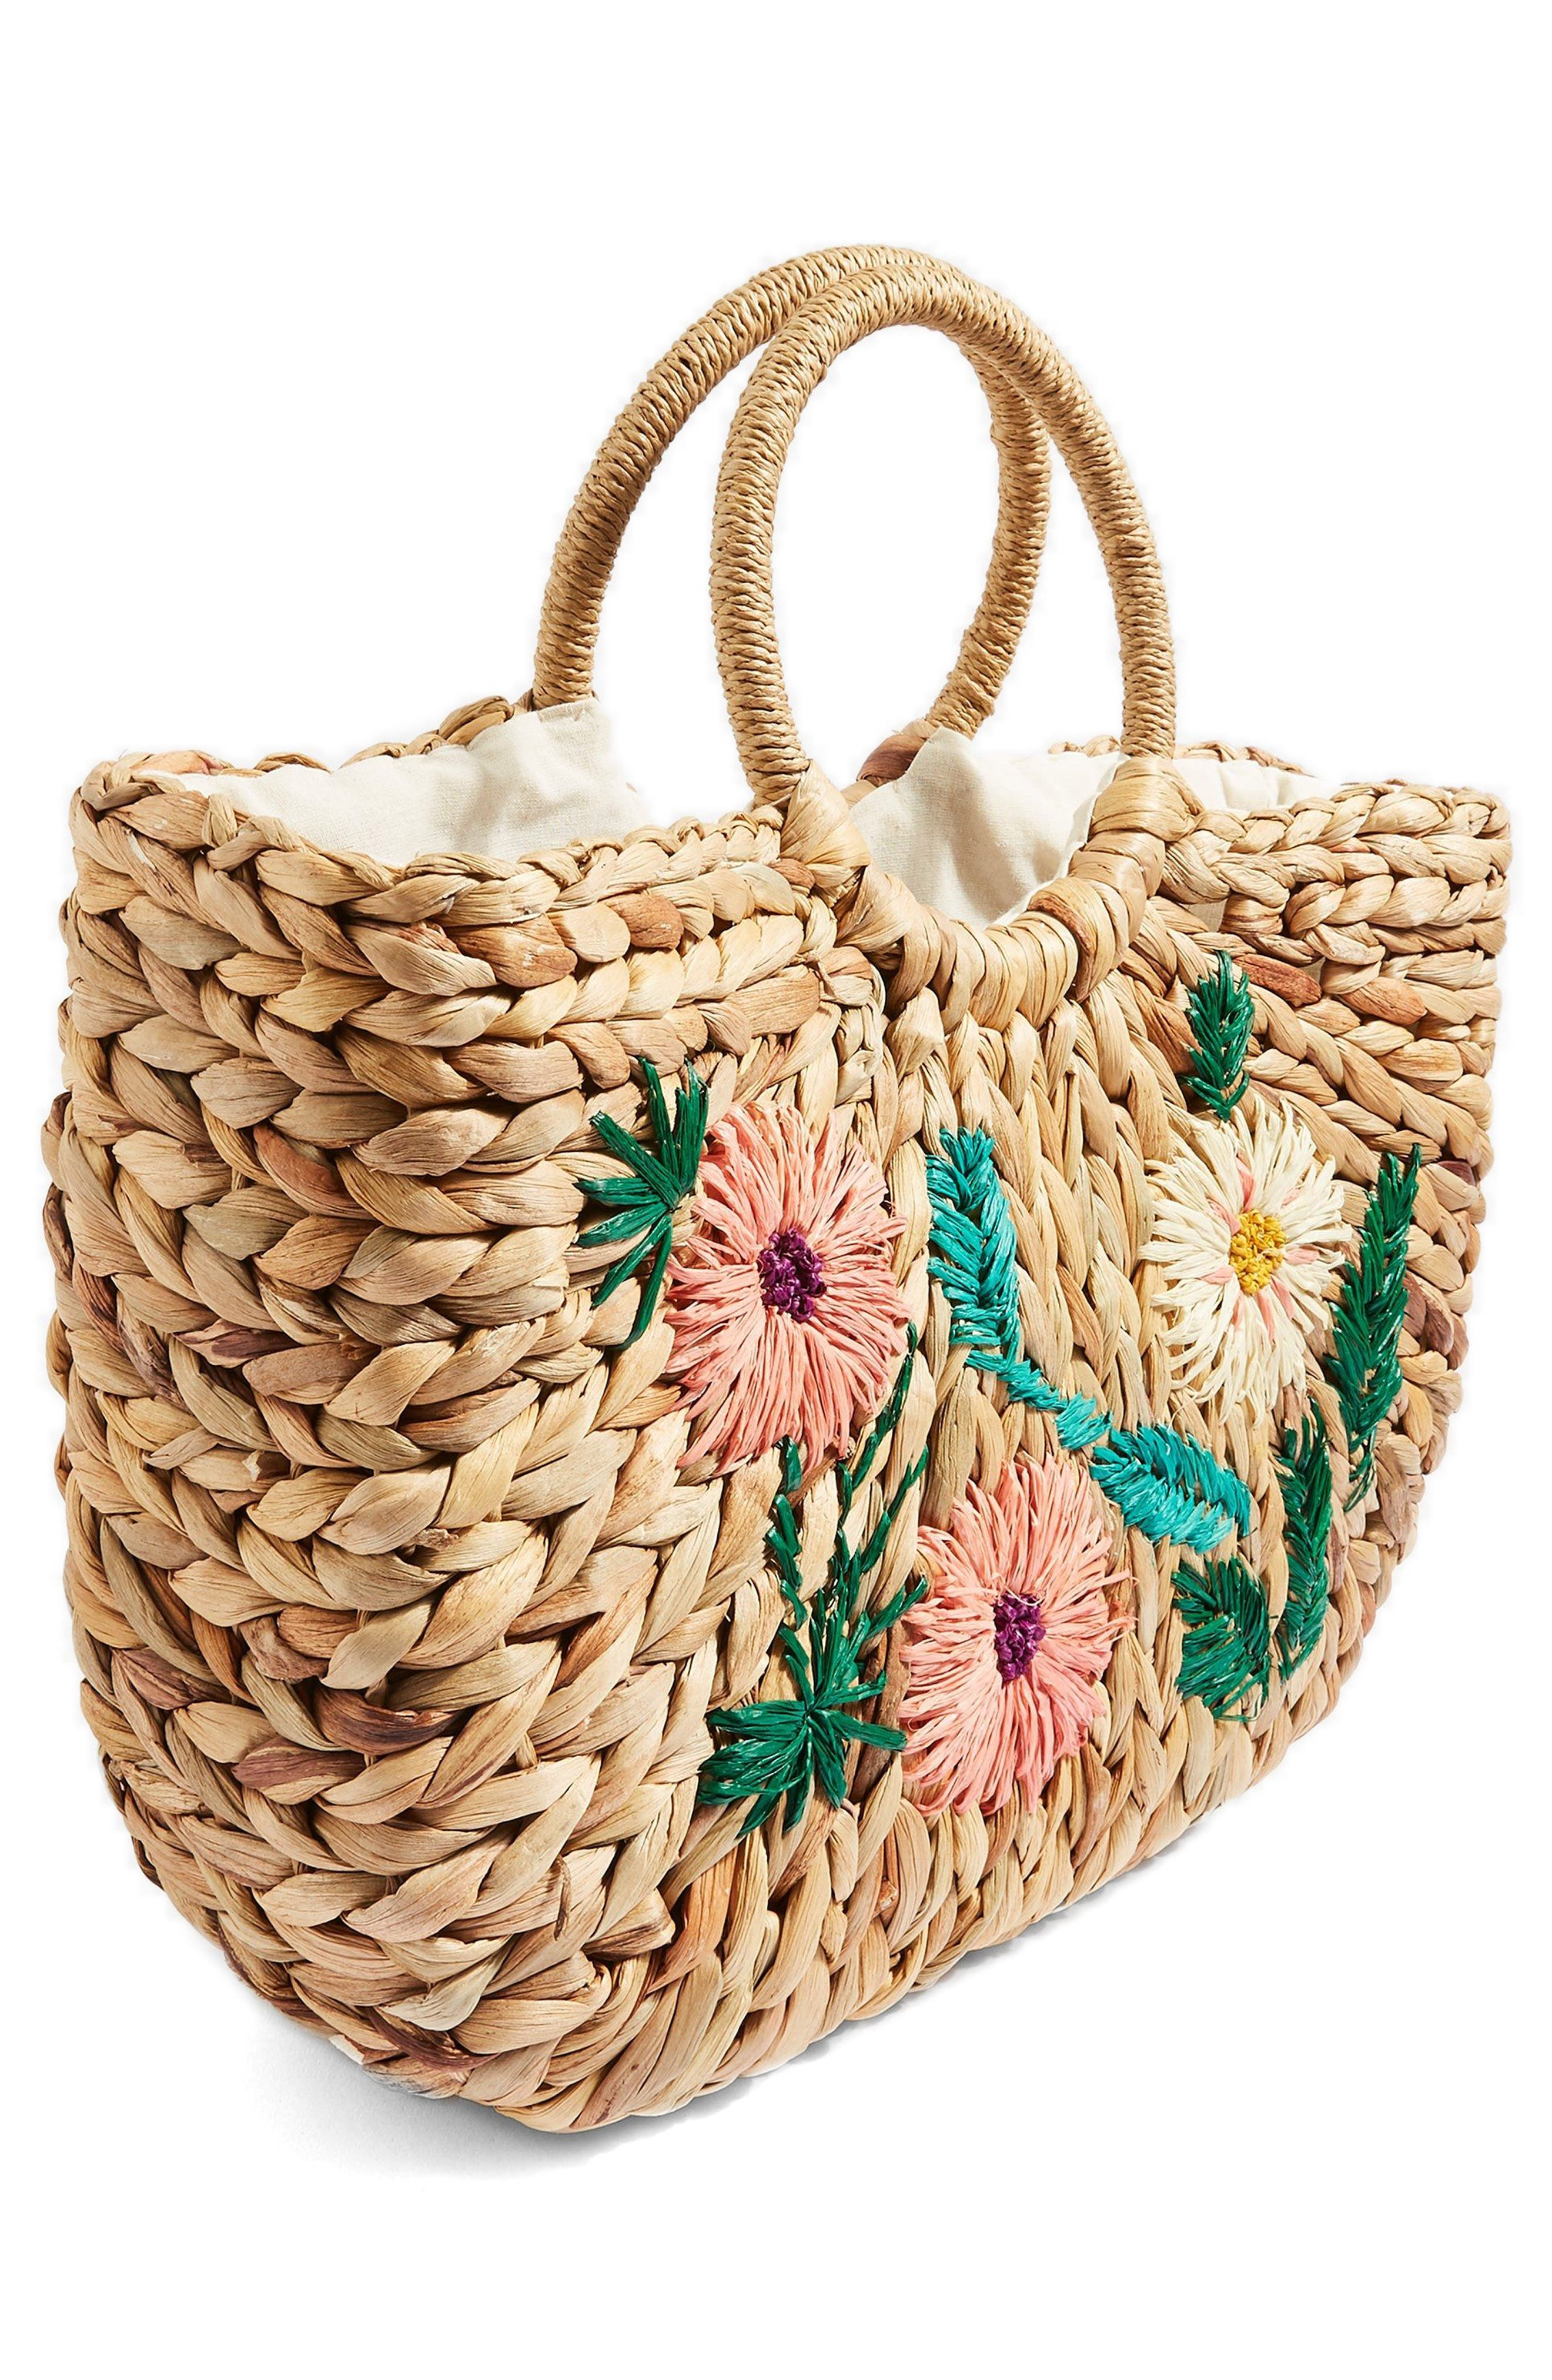 Beverly Floral Embroidered Straw Tote Bag,                             Alternate thumbnail 3, color,                             250